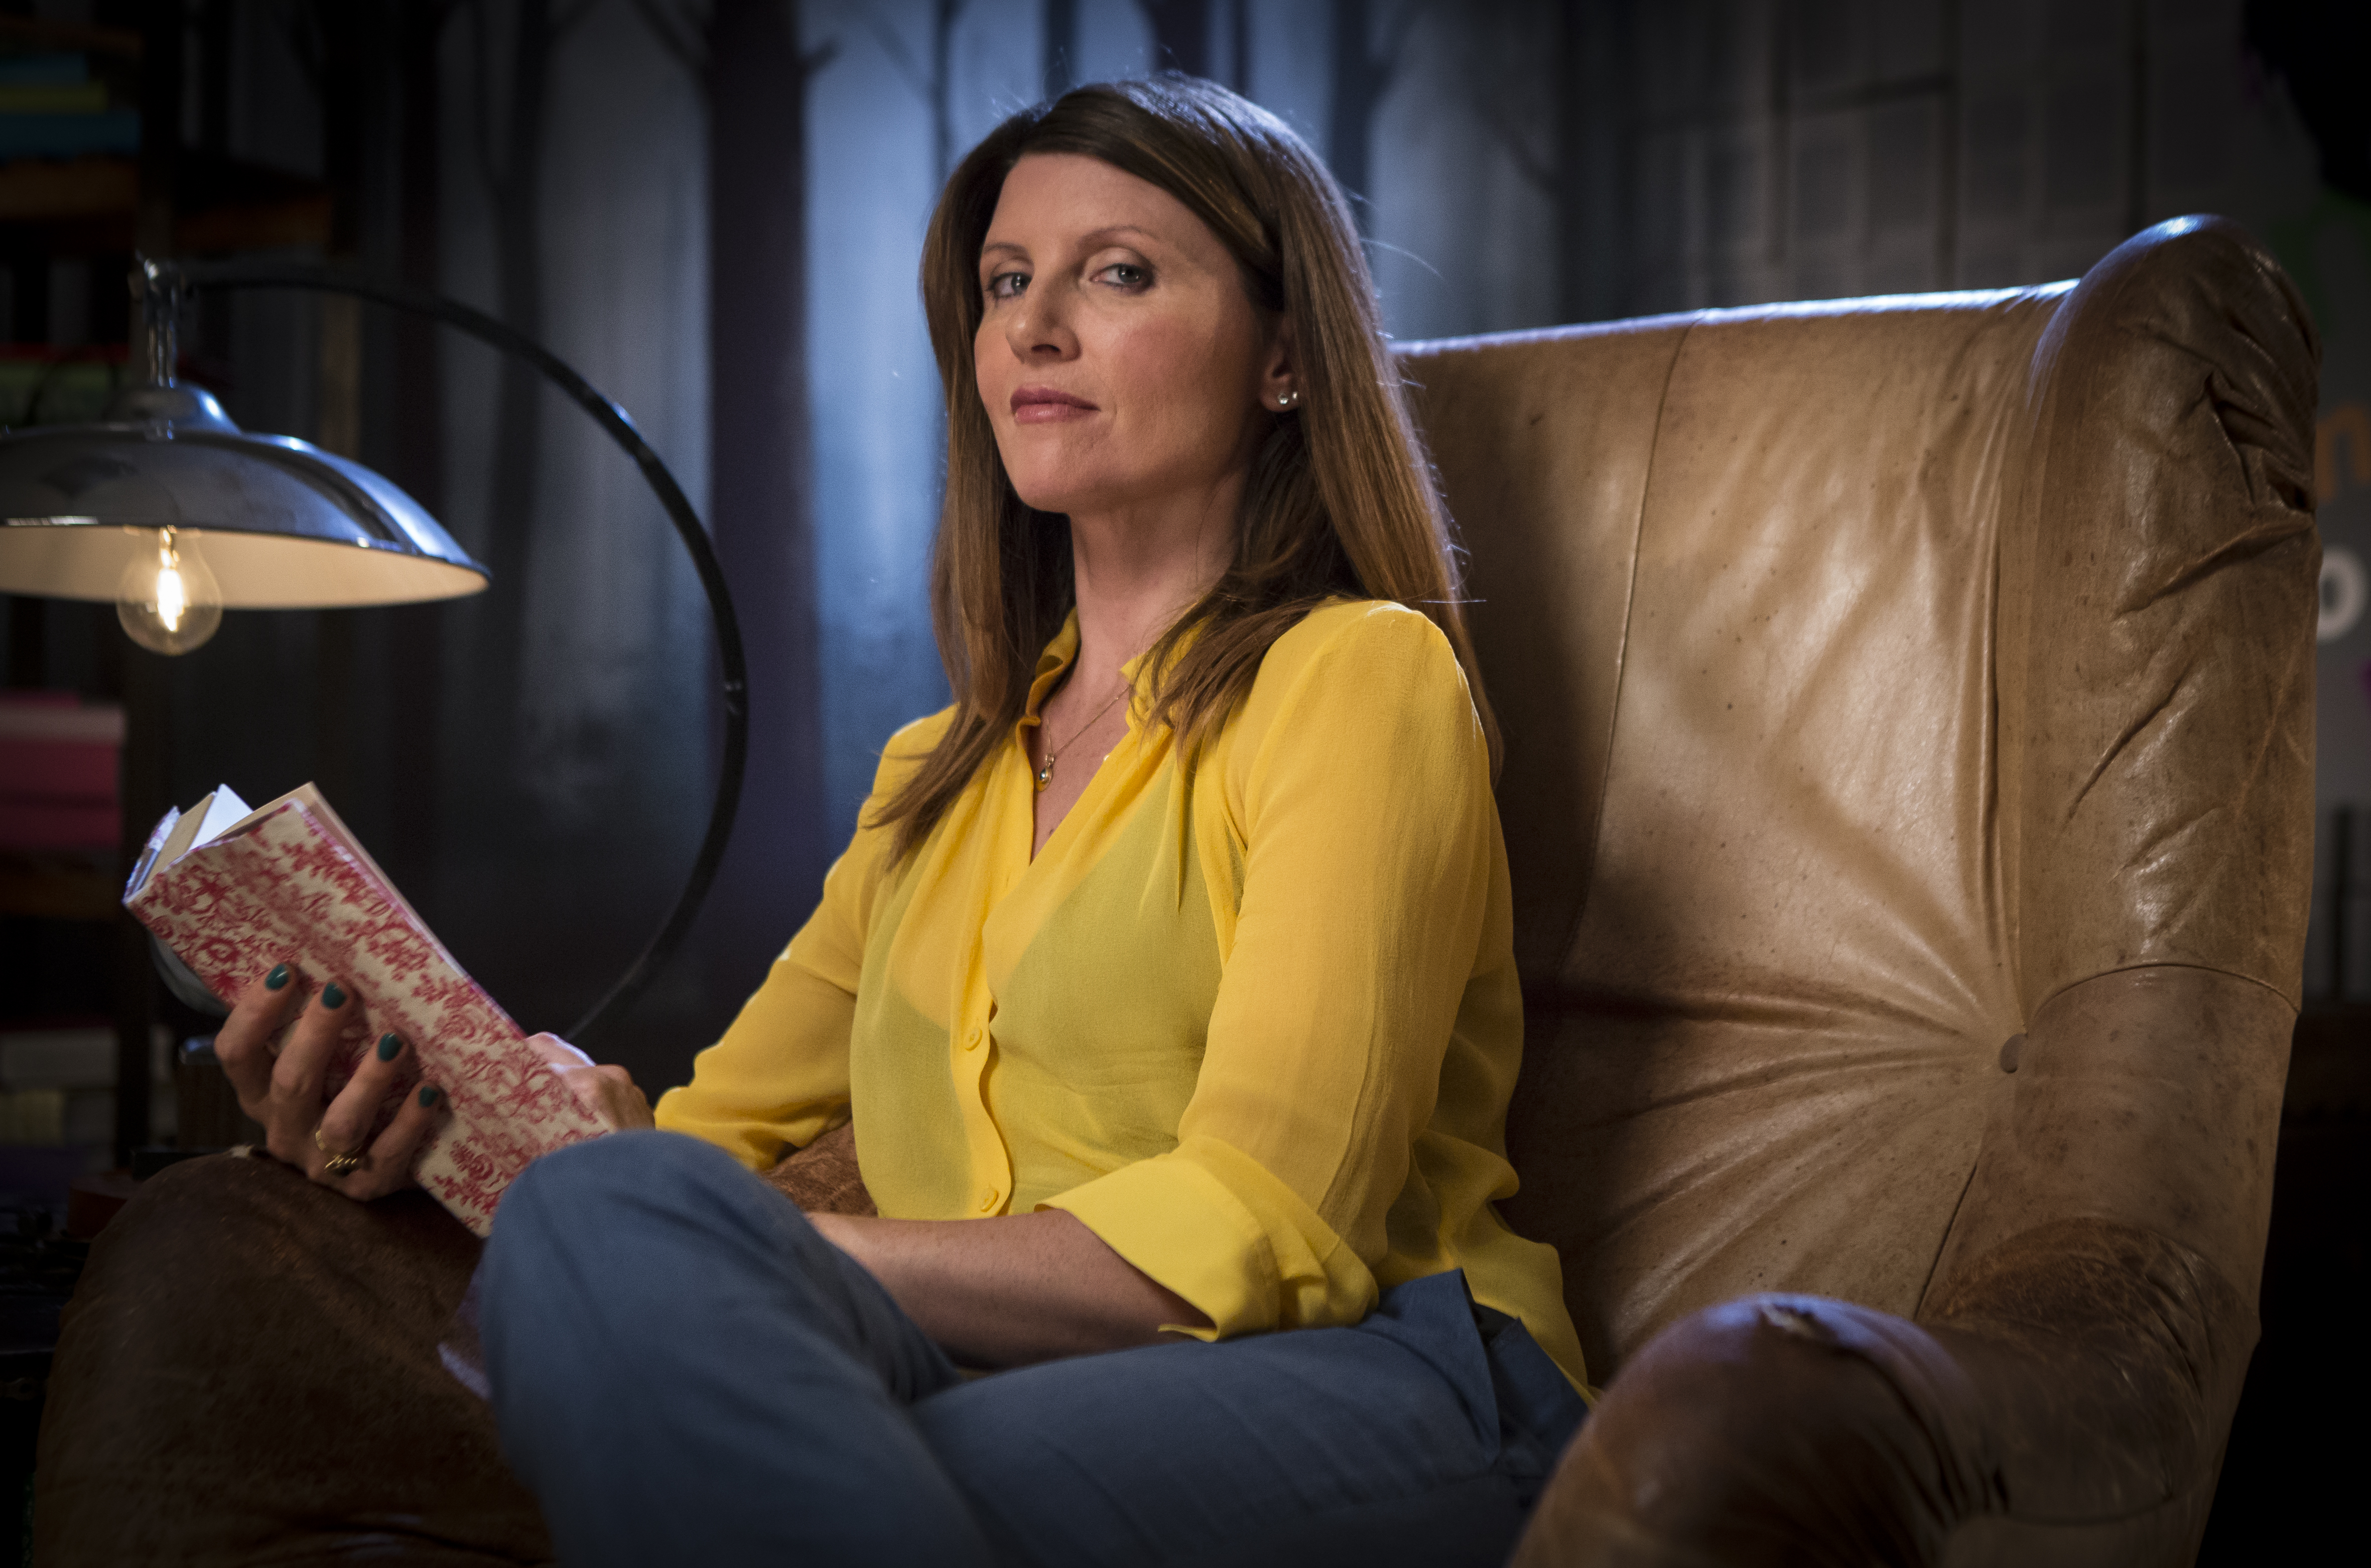 Crackanory Episode 4 (Sharon Horgan who reads The Translator)